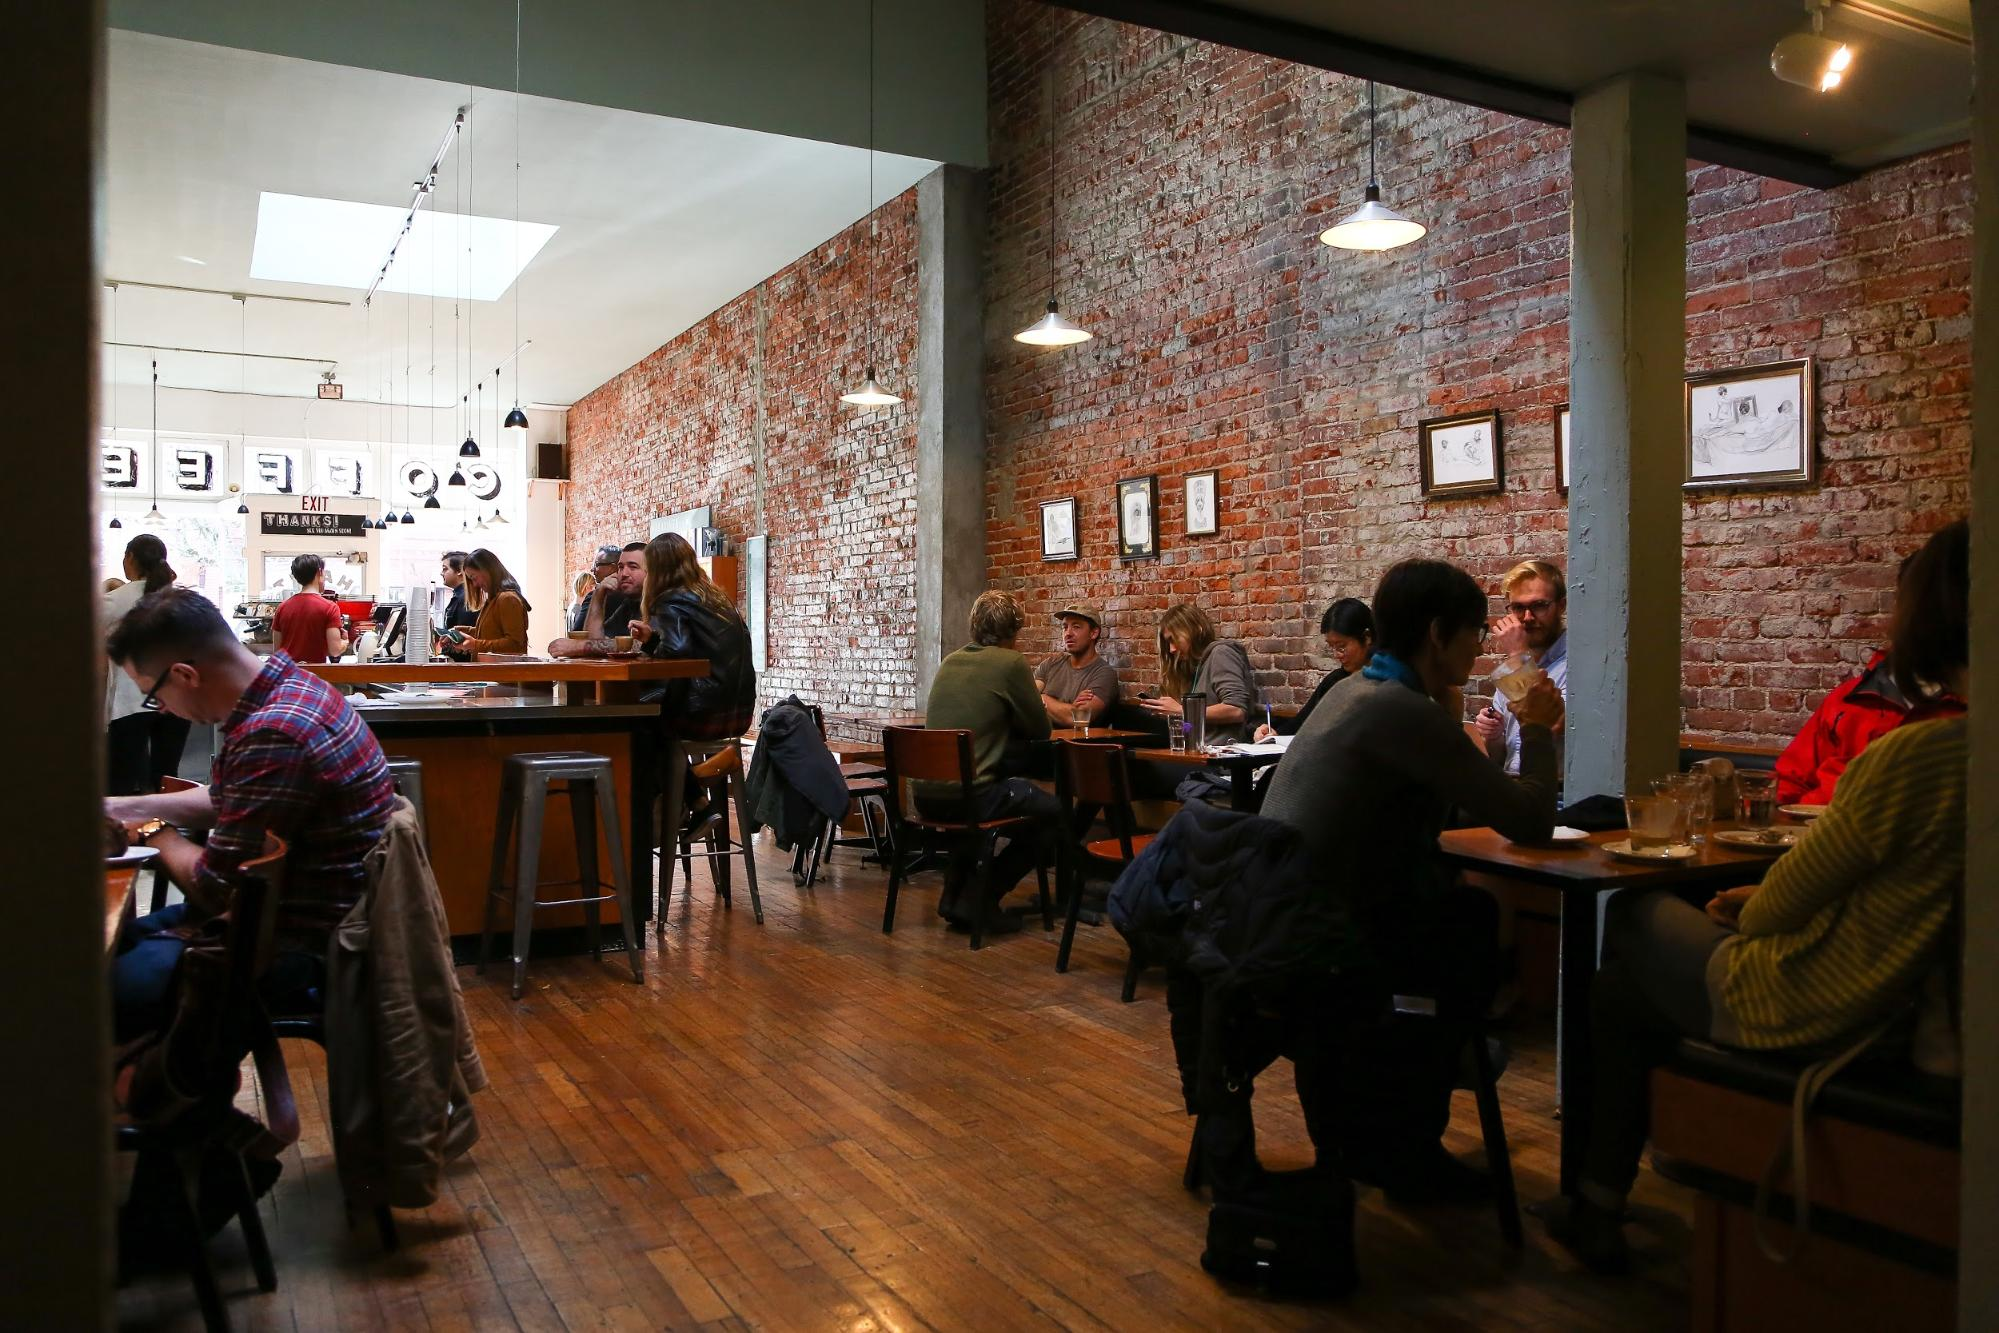 Diners sit in a modern coffee shop with brick walls.